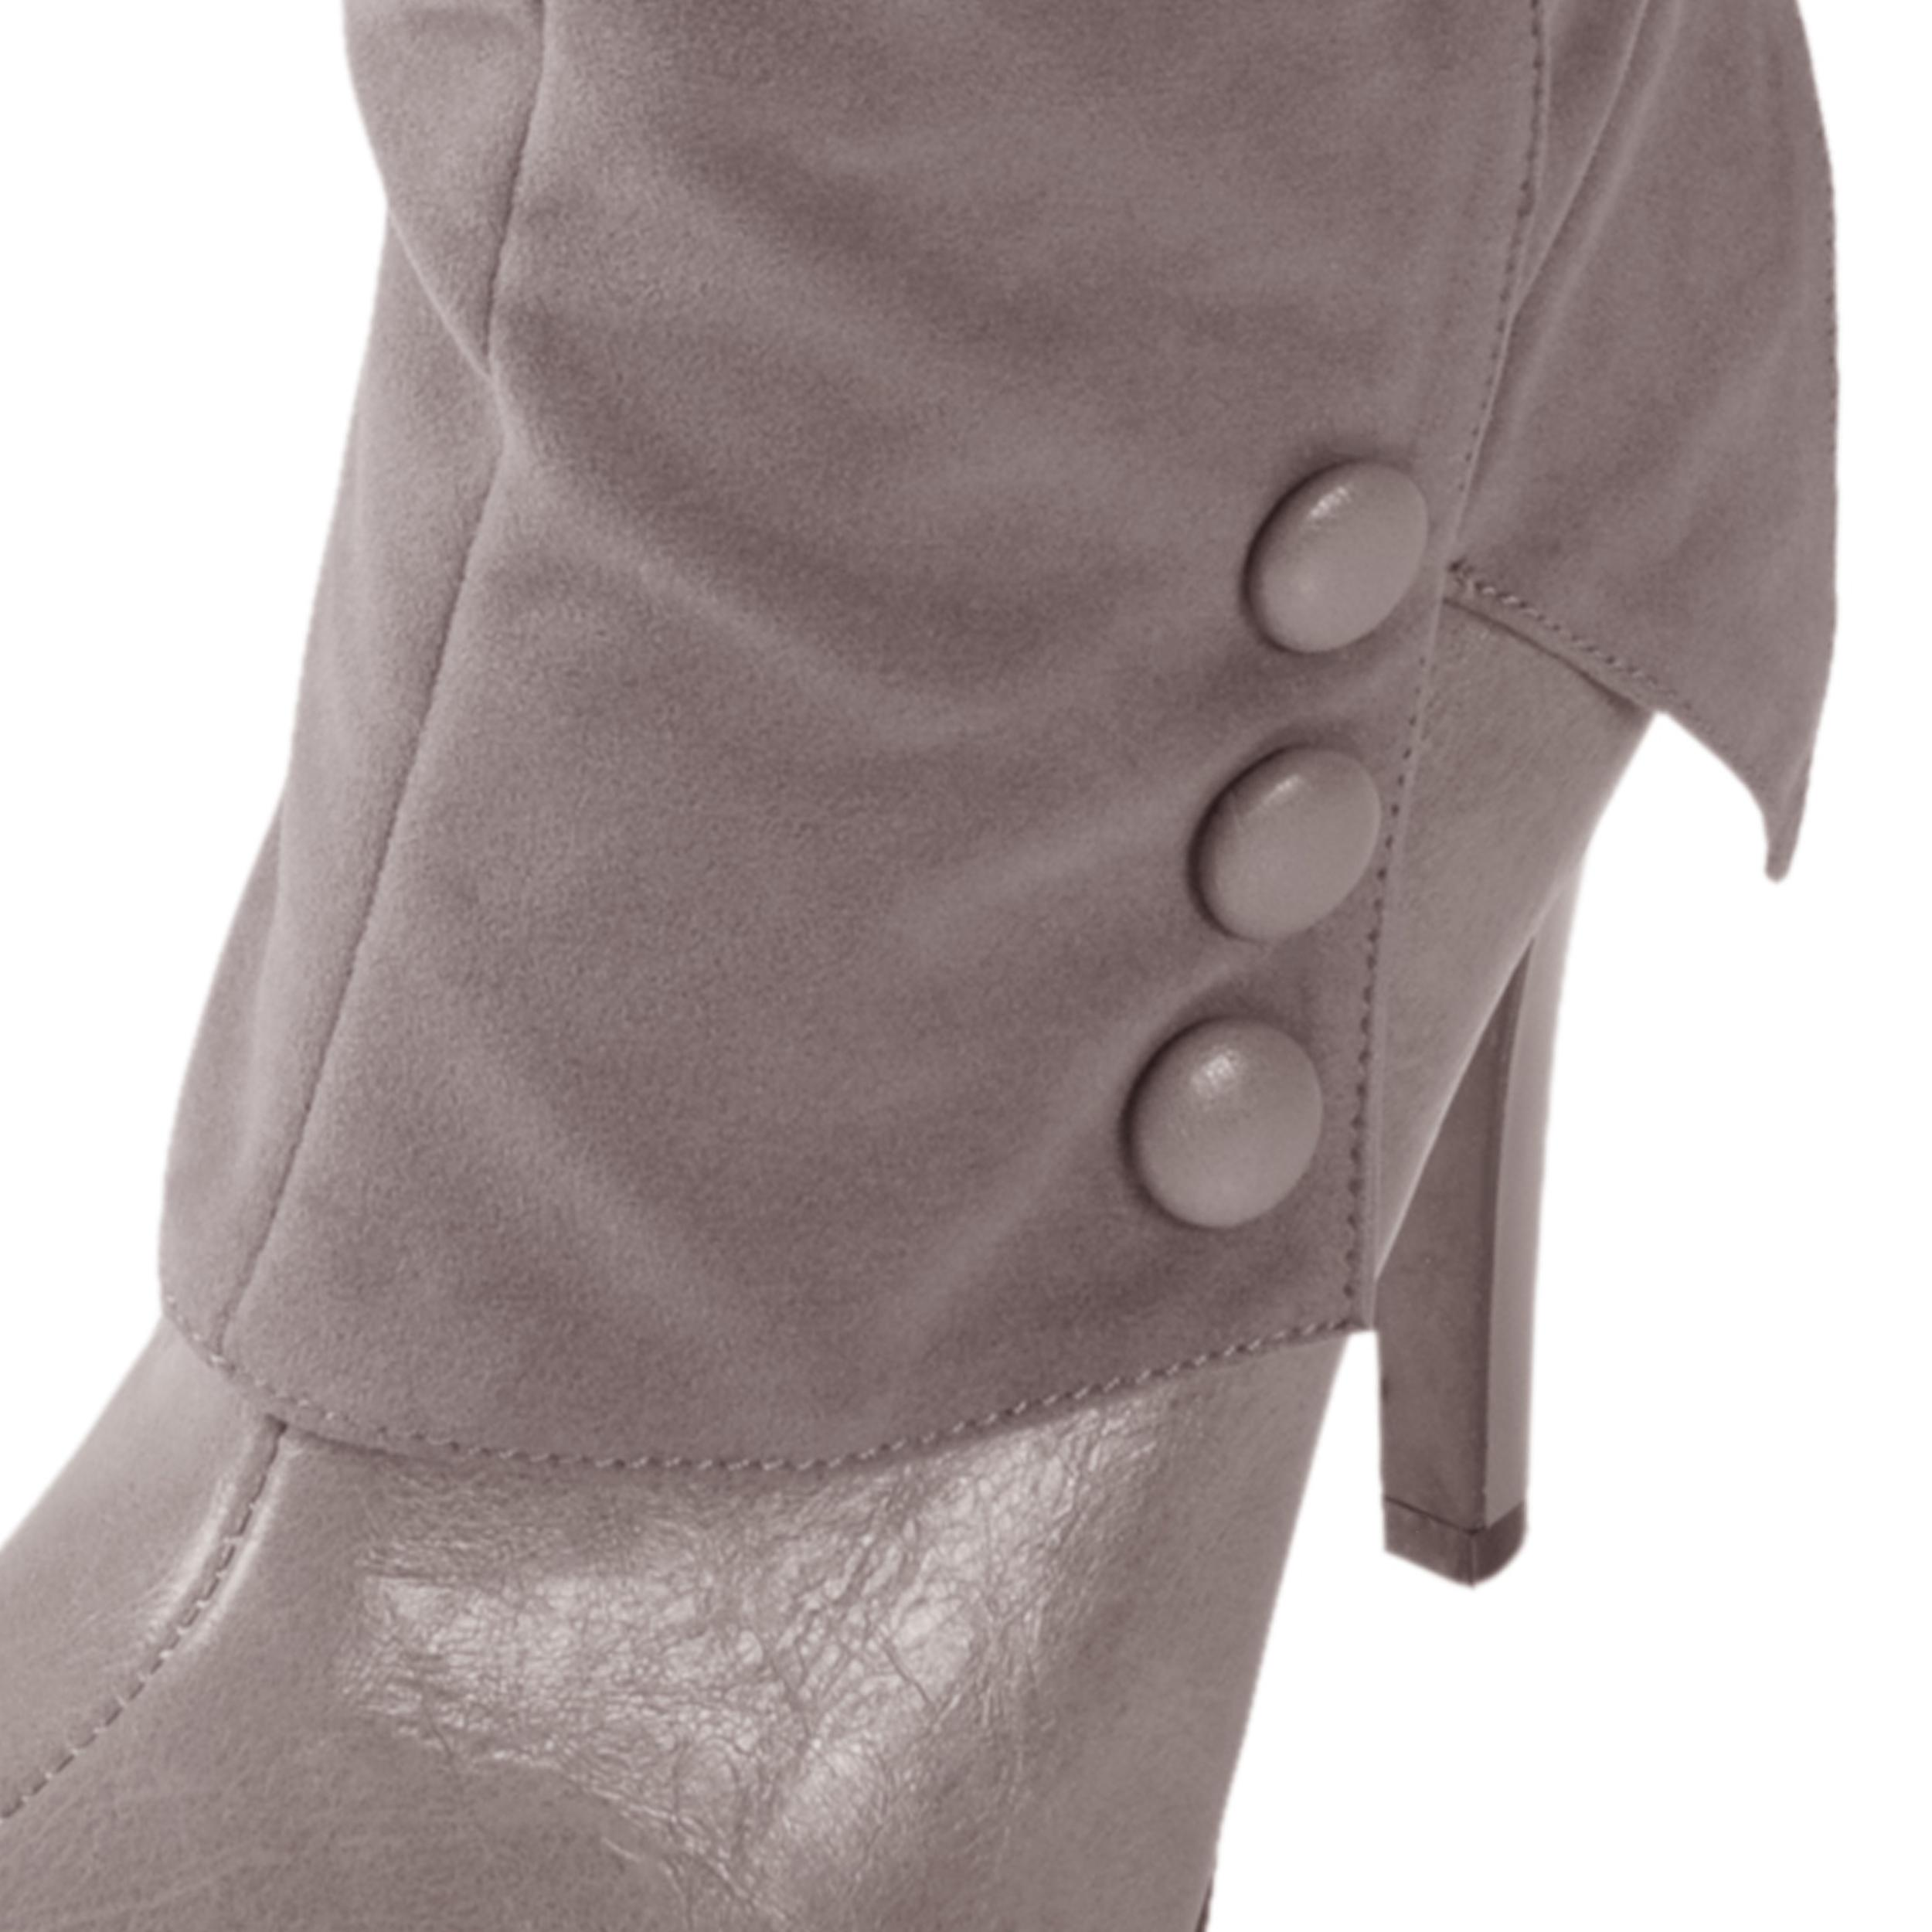 Journee Collection Women's 'Savior-51' Cinched Heeled Boots